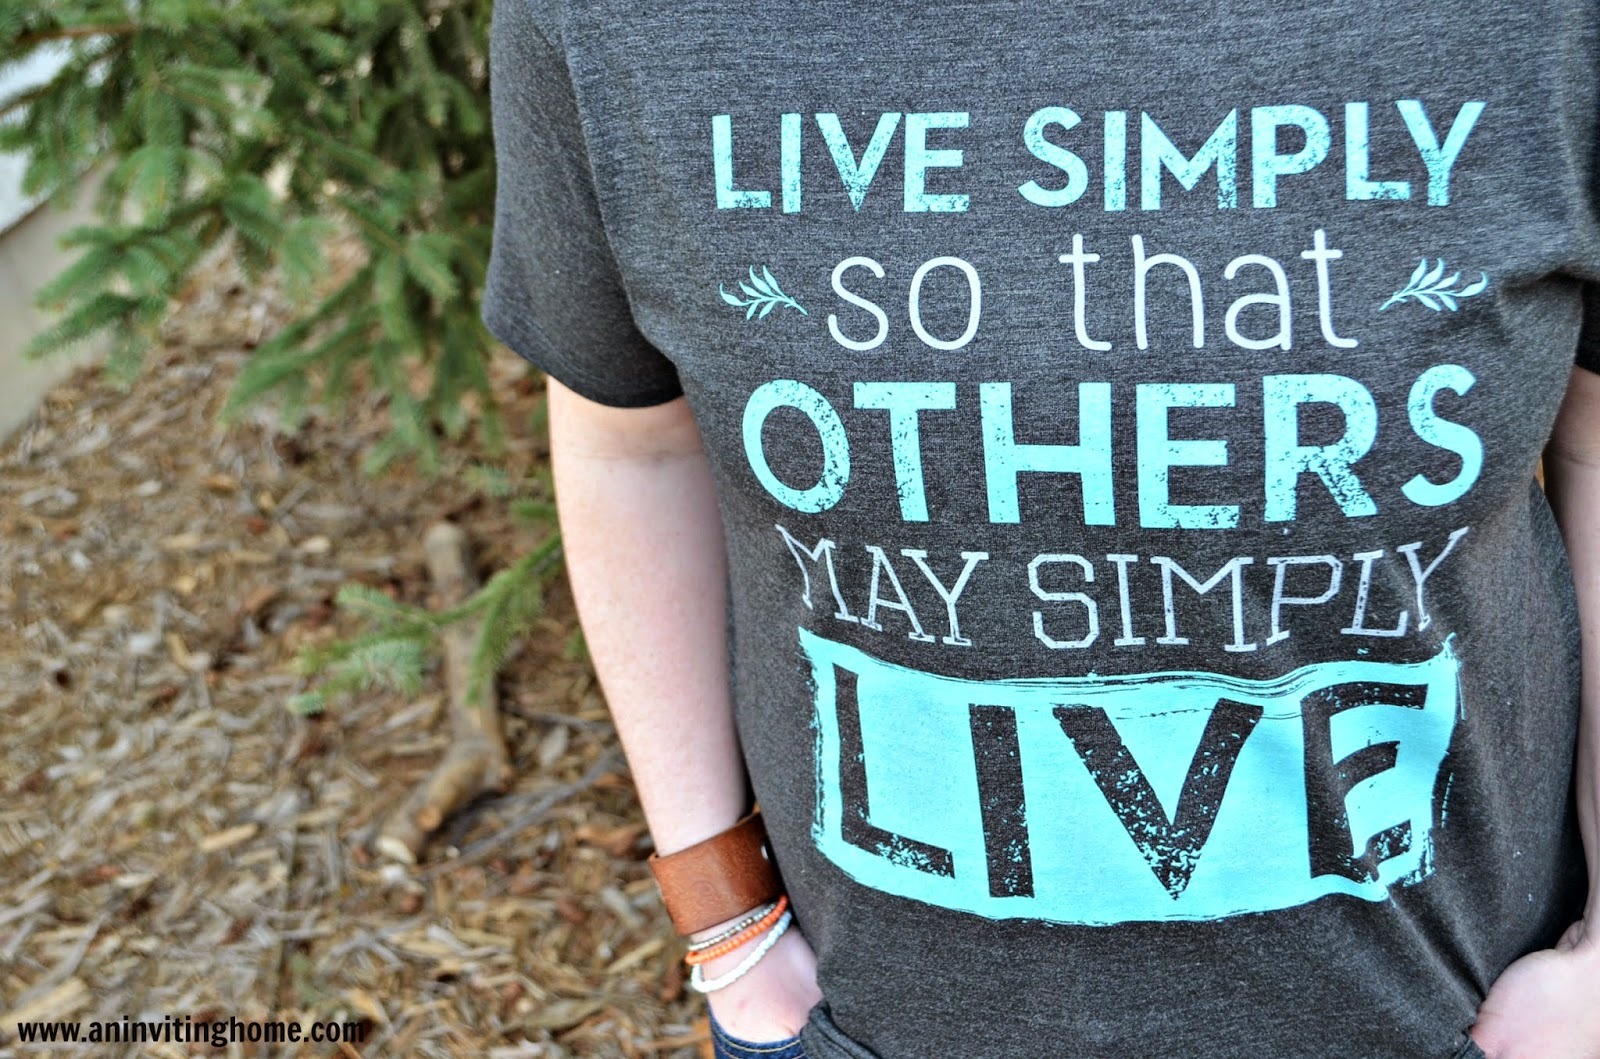 live simply so that others may simply live